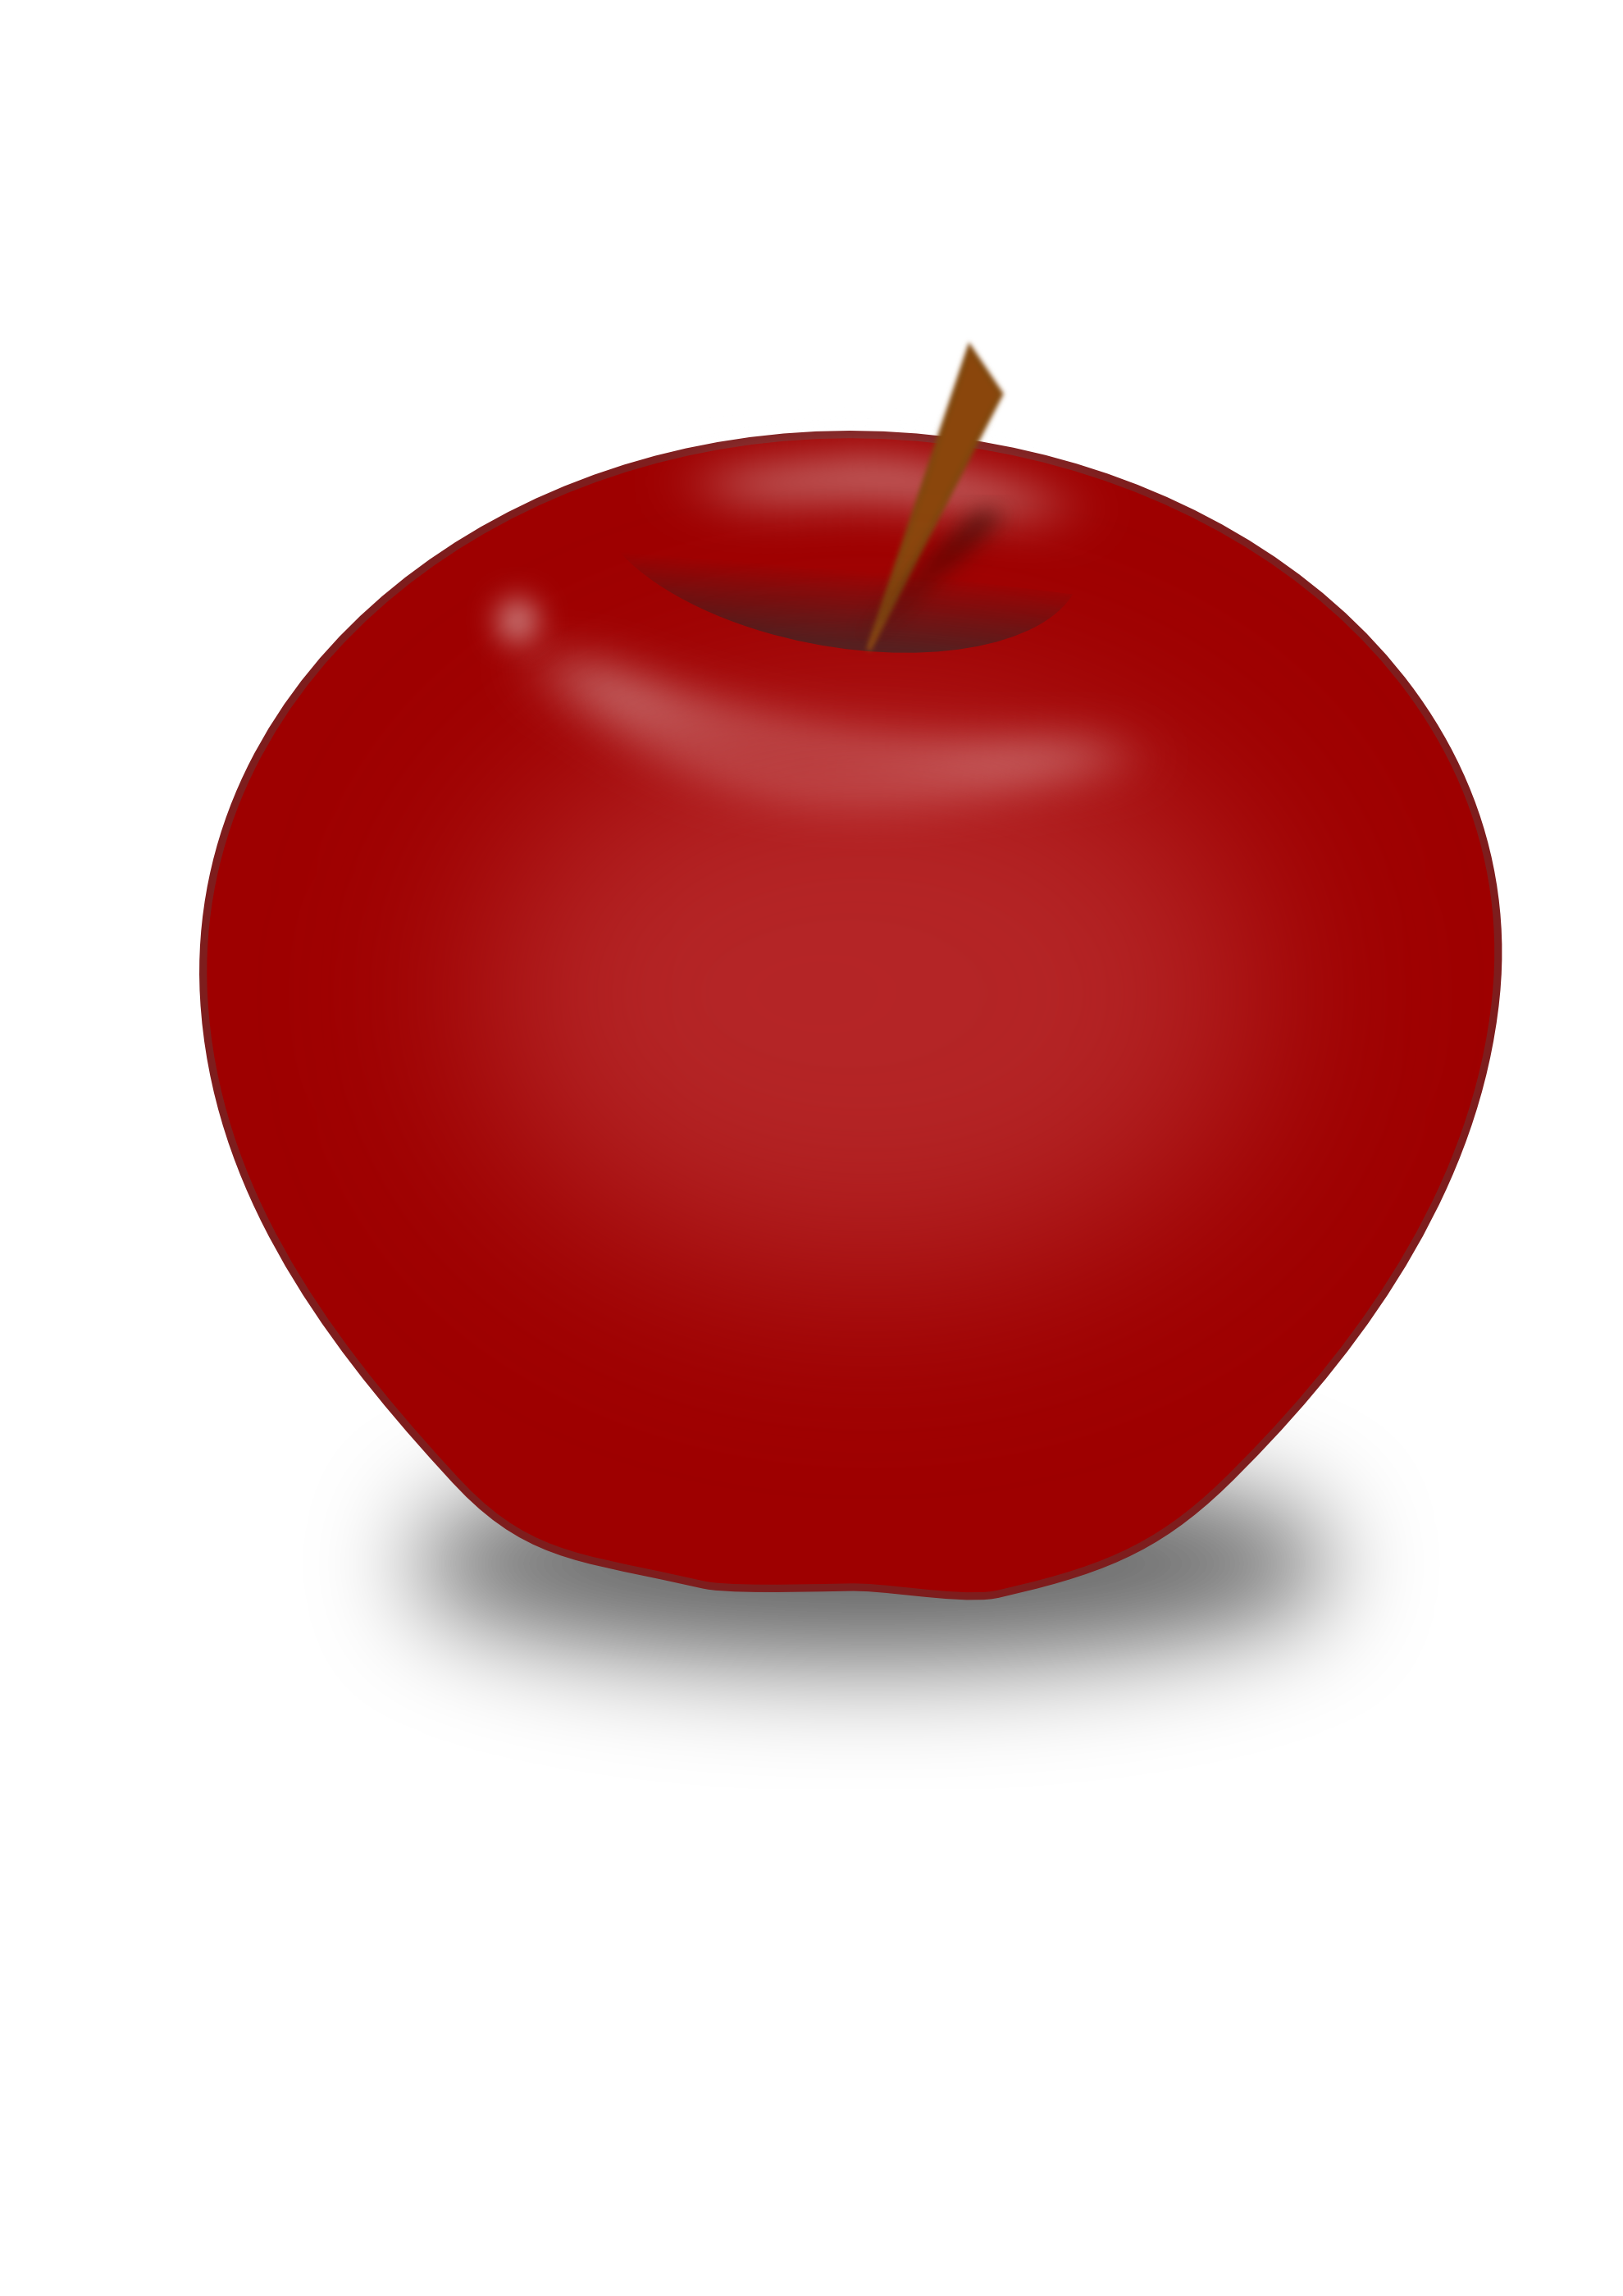 graphic free download Red apples clipart. Apple png image purepng